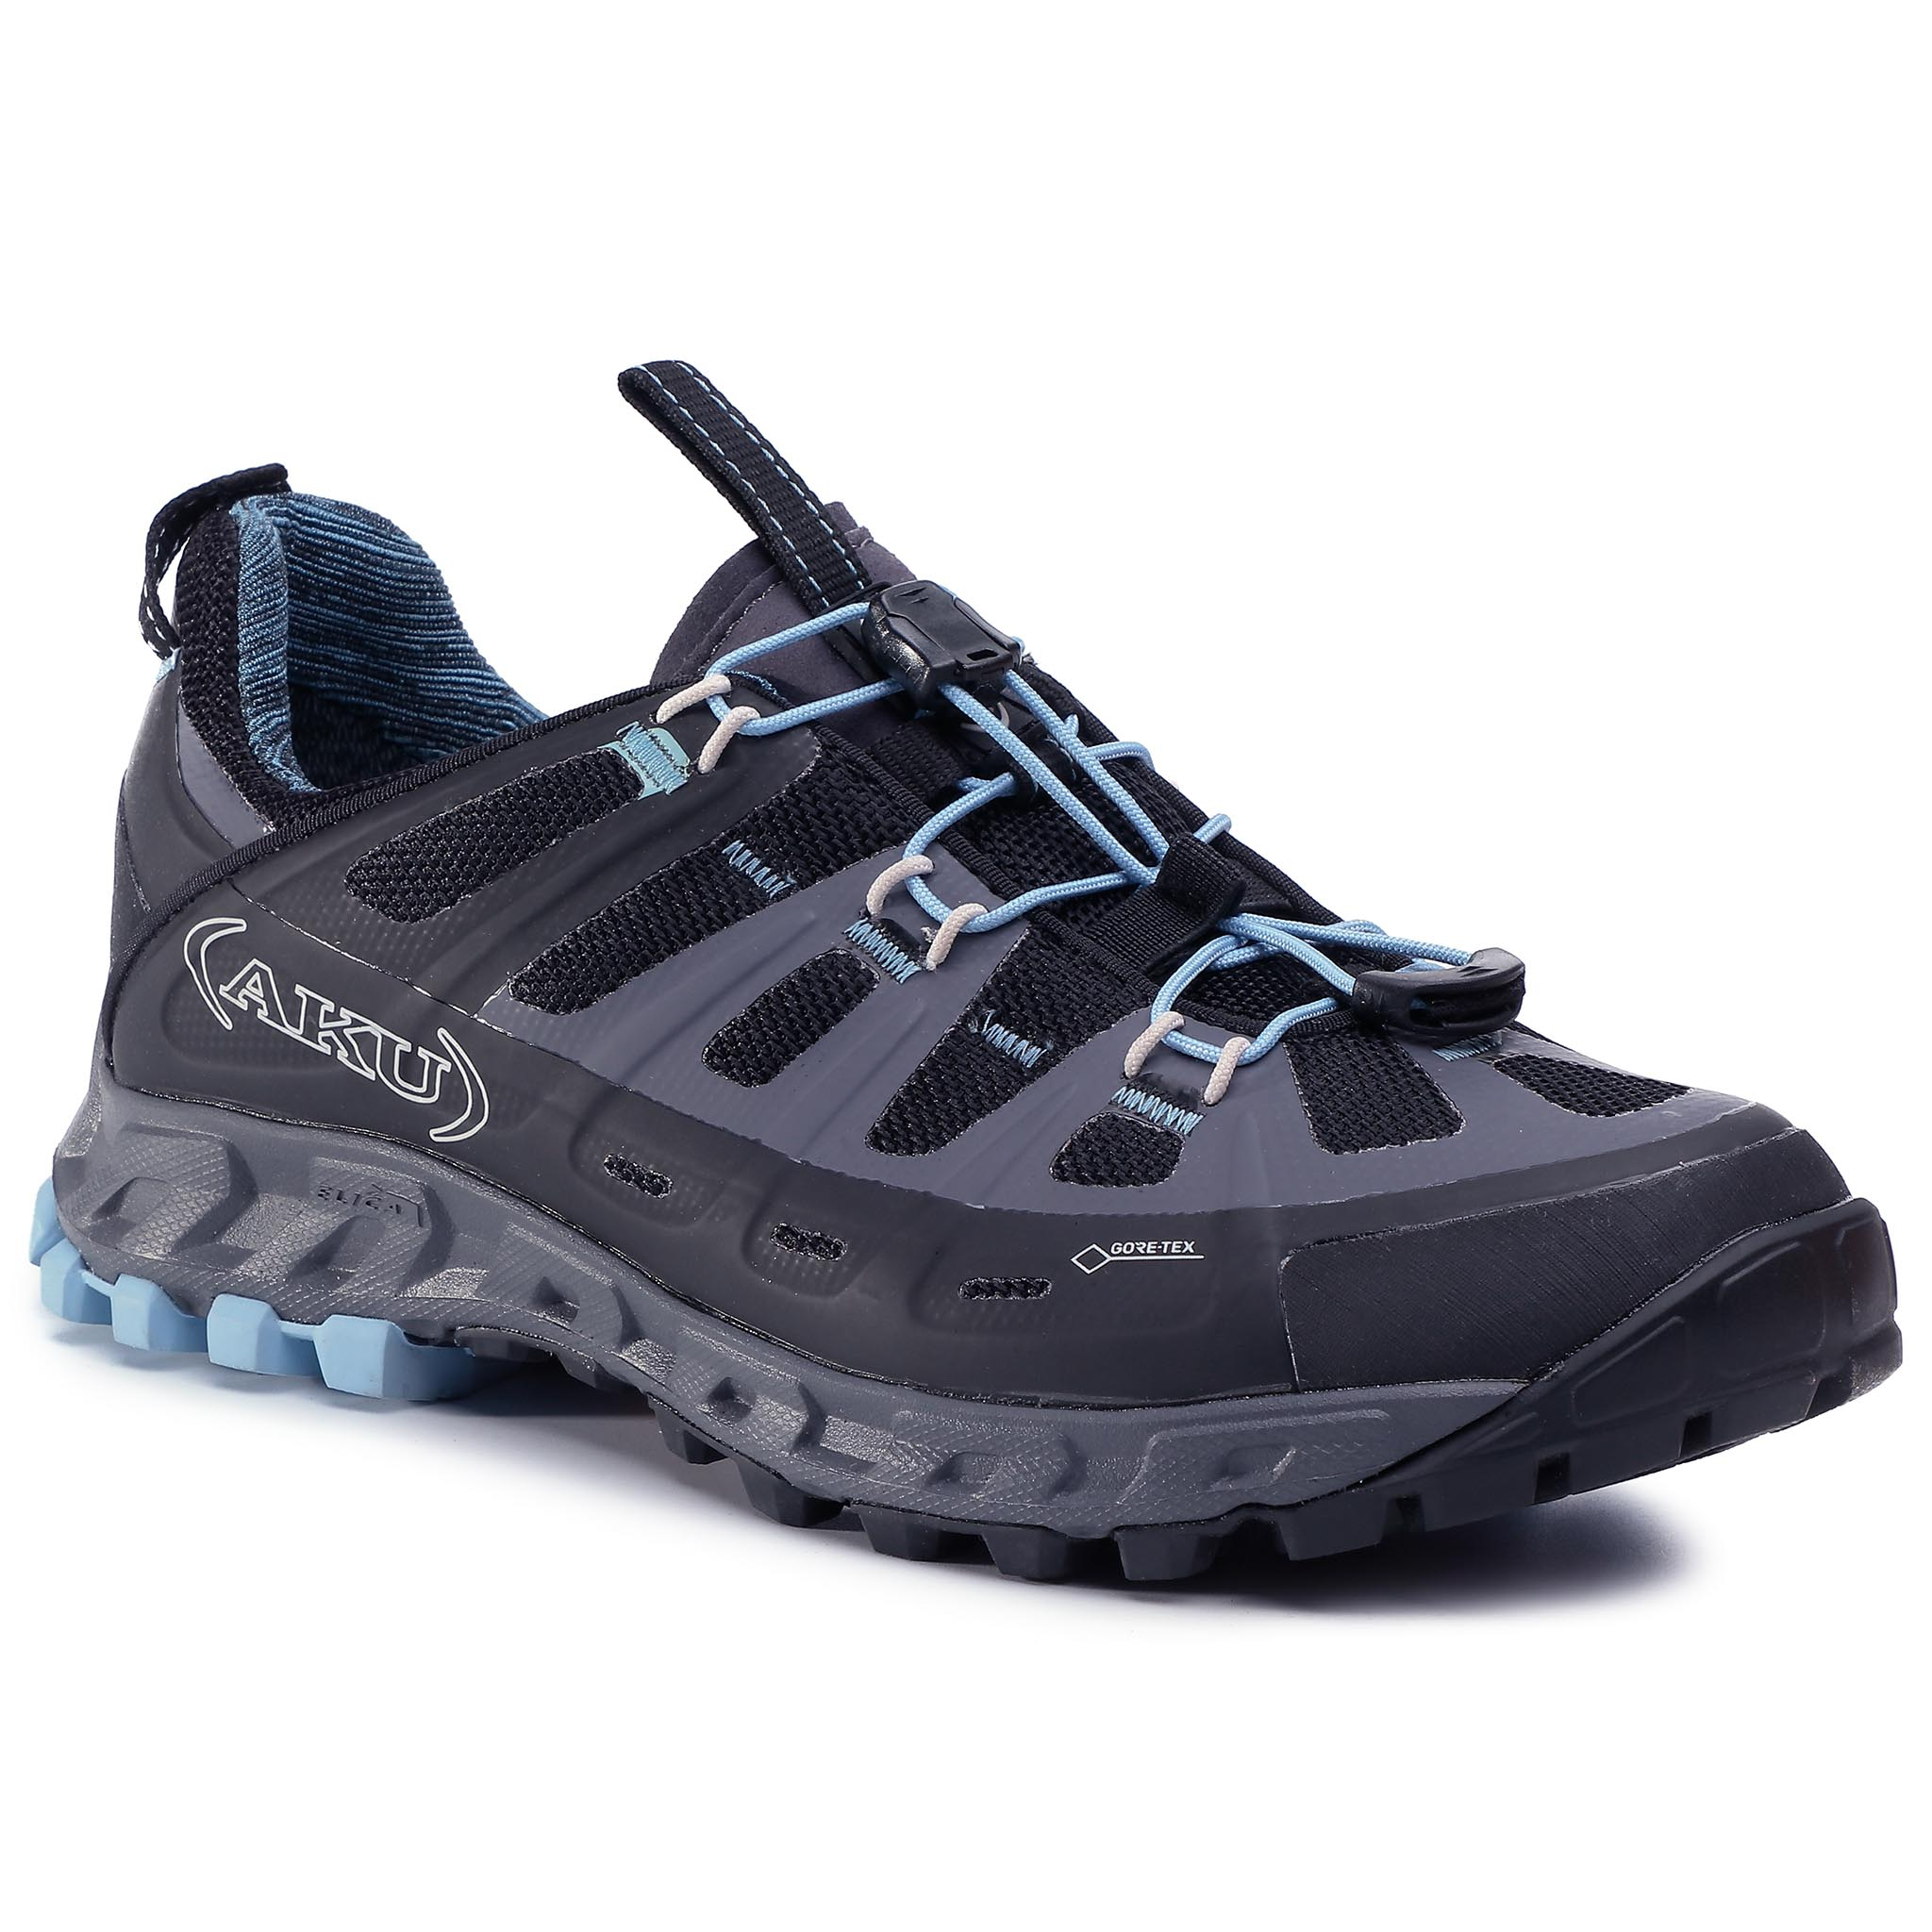 Trekkings Aku - Selvatica Gtx Ws Gore-Tex 679 Black/Light Blue 144 imagine epantofi.ro 2021